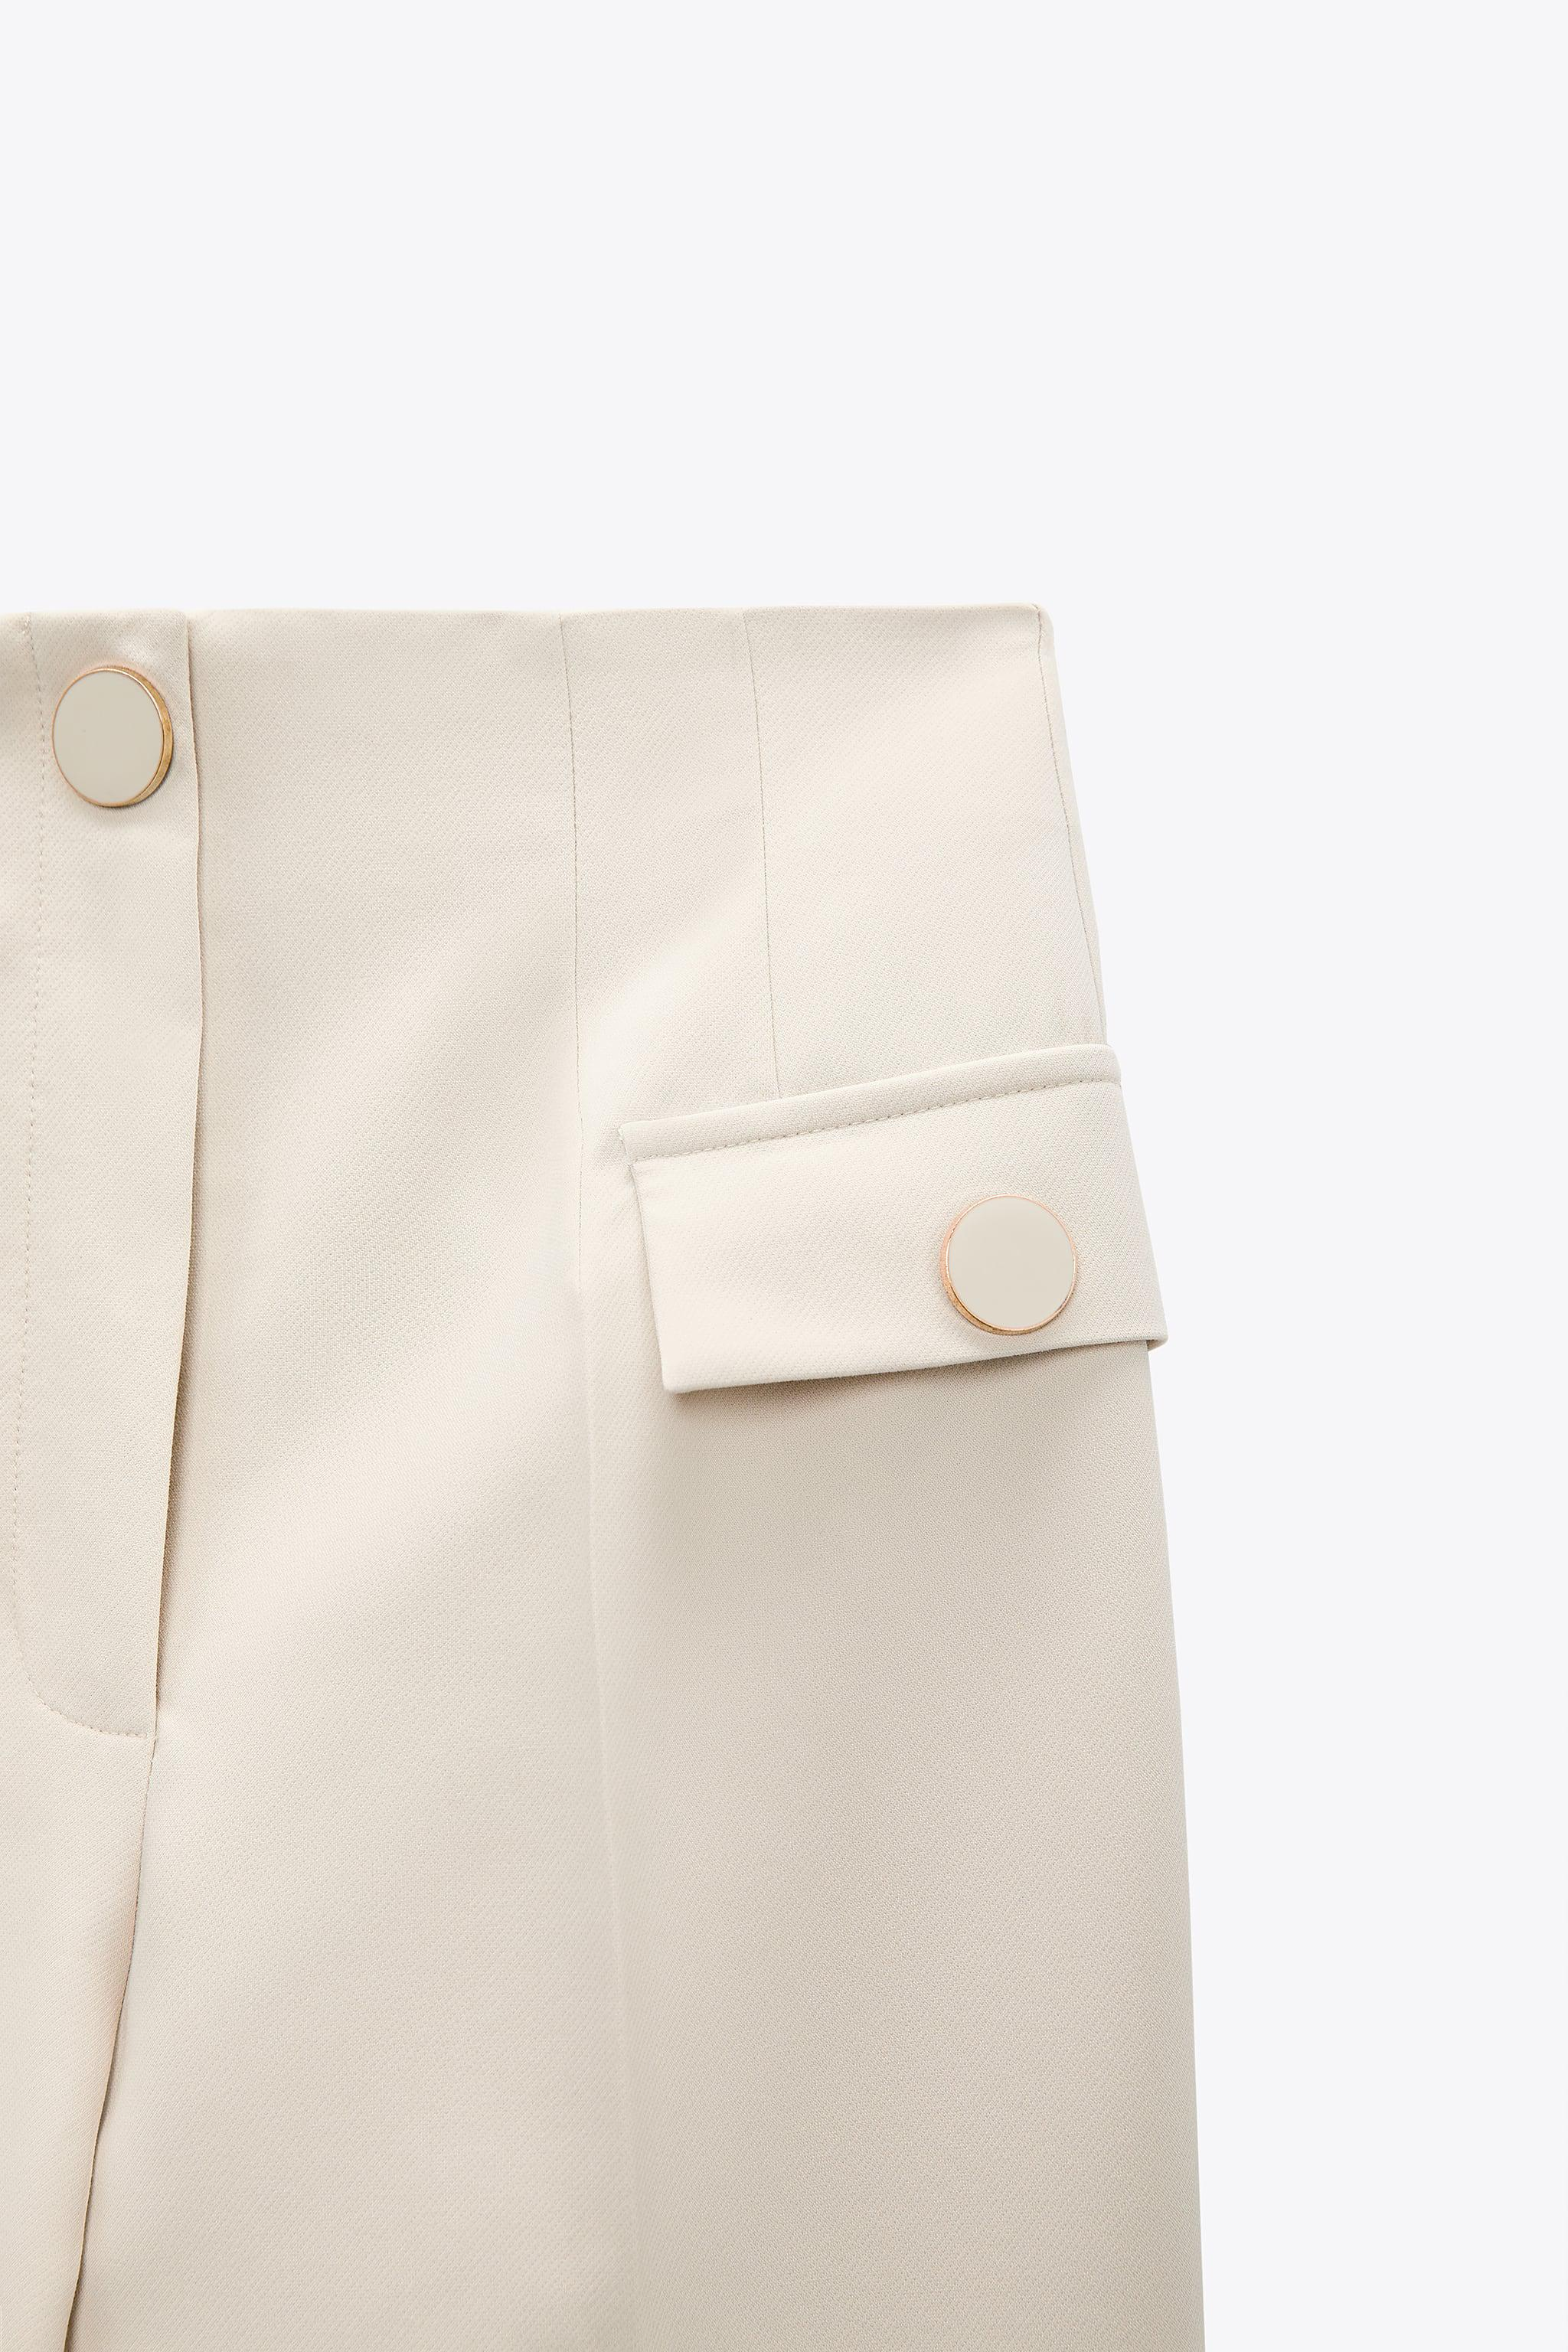 BUTTONED HIGH-WAISTED PANTS 6